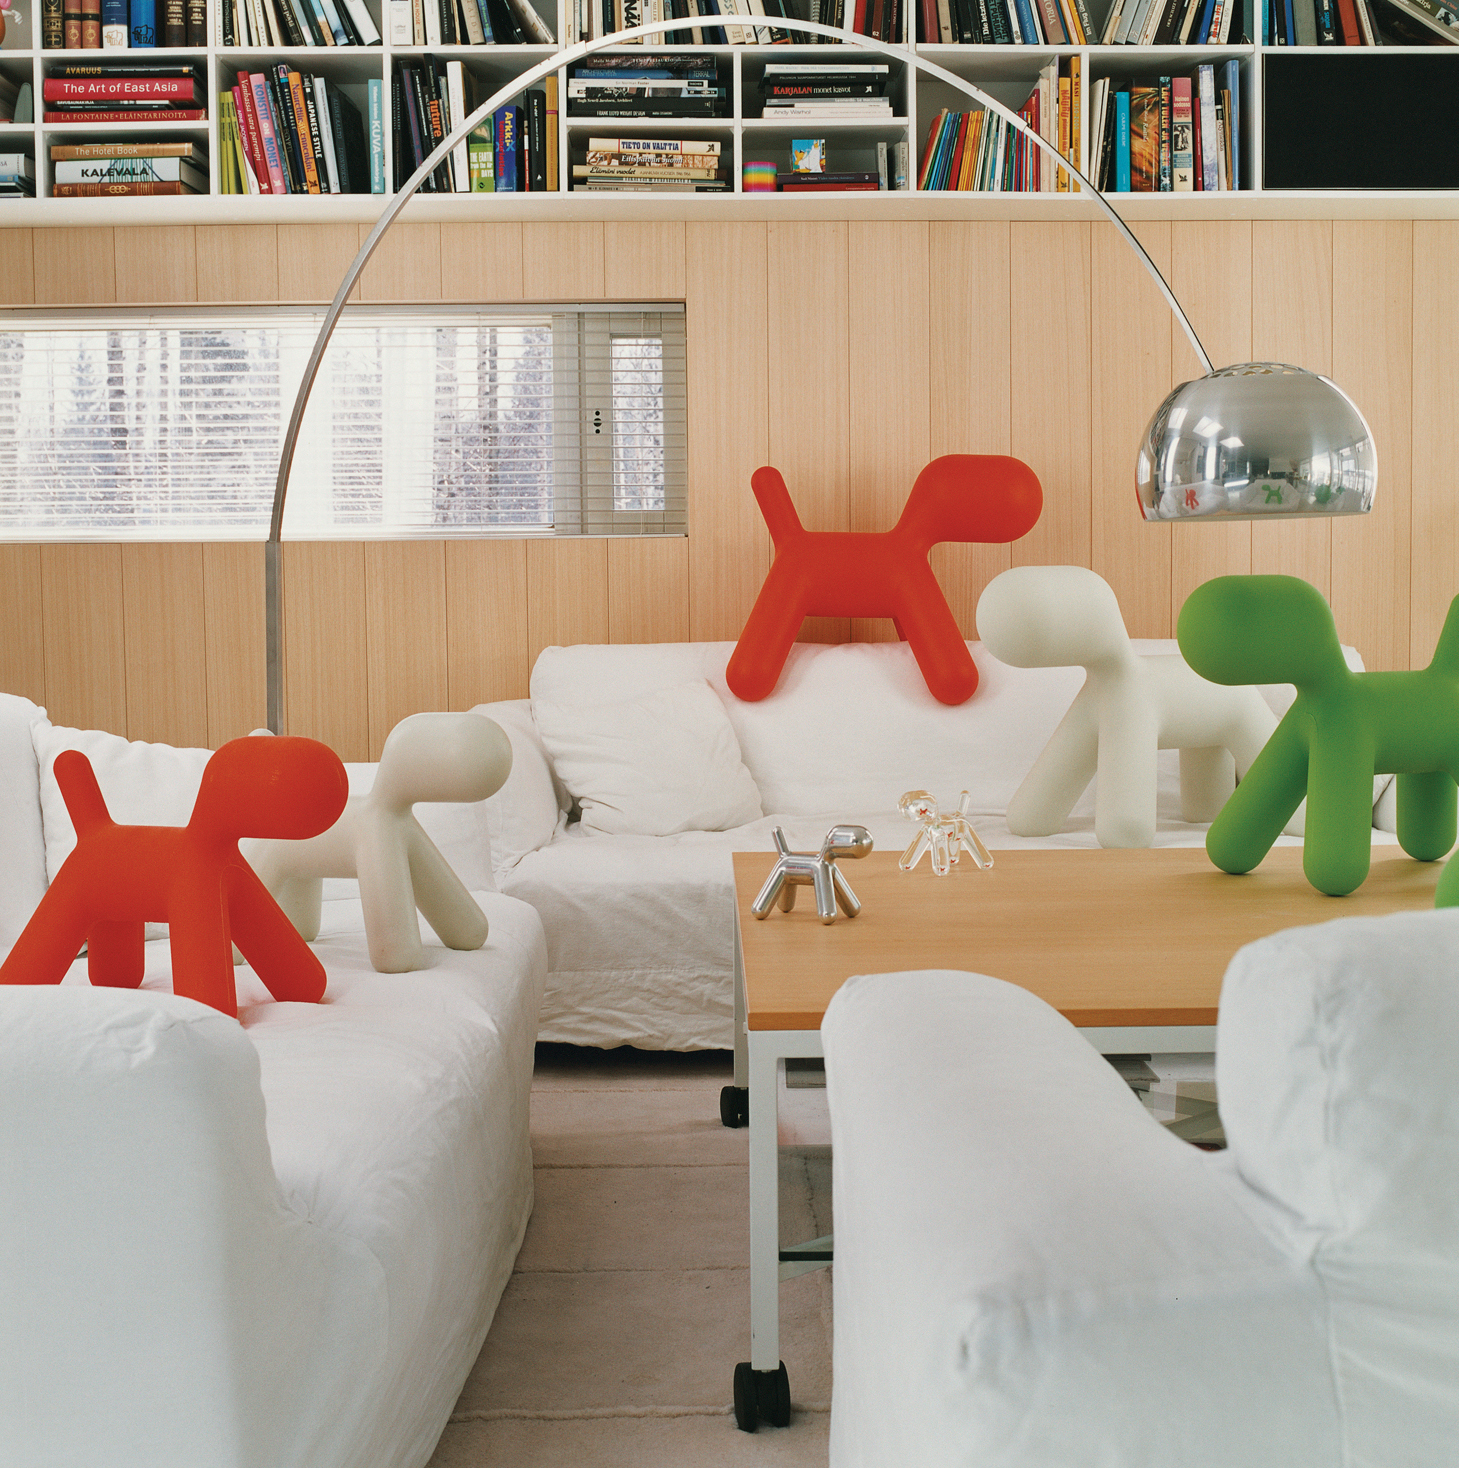 A proliferation of Puppies, Aarnio's 2005 design for Italian manufacturer Magis, gather in the living room of his Veikkola, Finland, home. Aarnio's playful spirit, evident in the iconic Ball Chair, is alive and well in his new work.